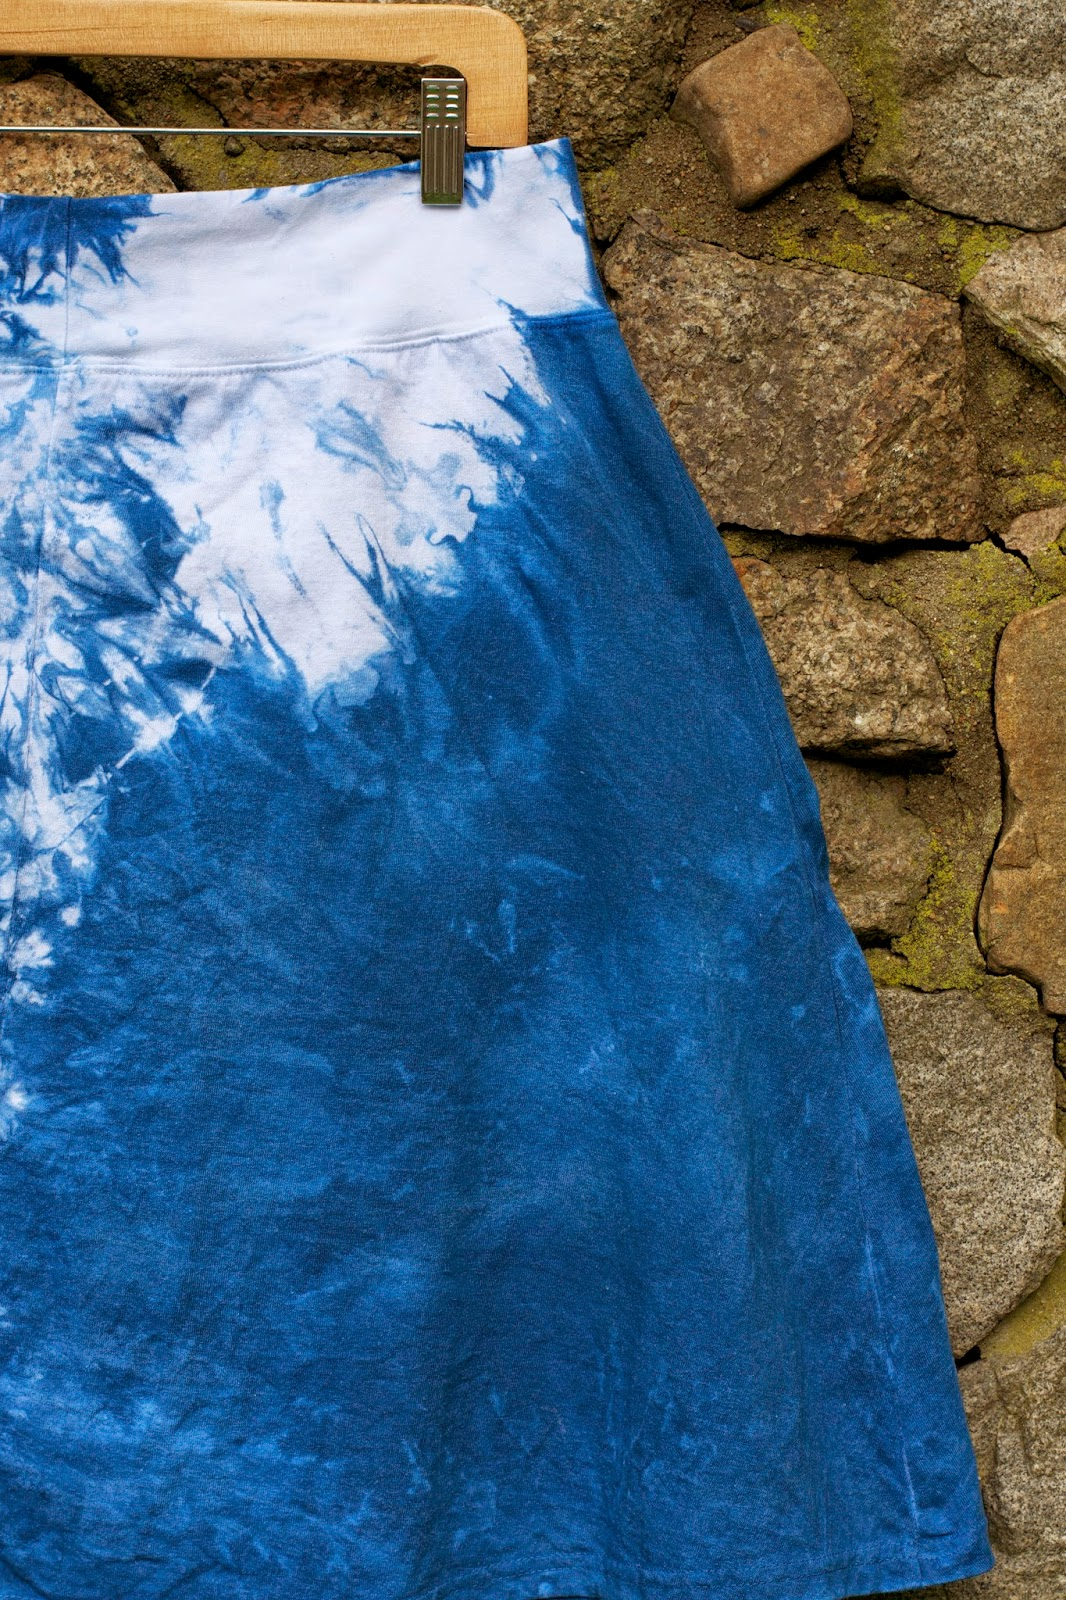 Profile: Right side. Indigo shibori skirt